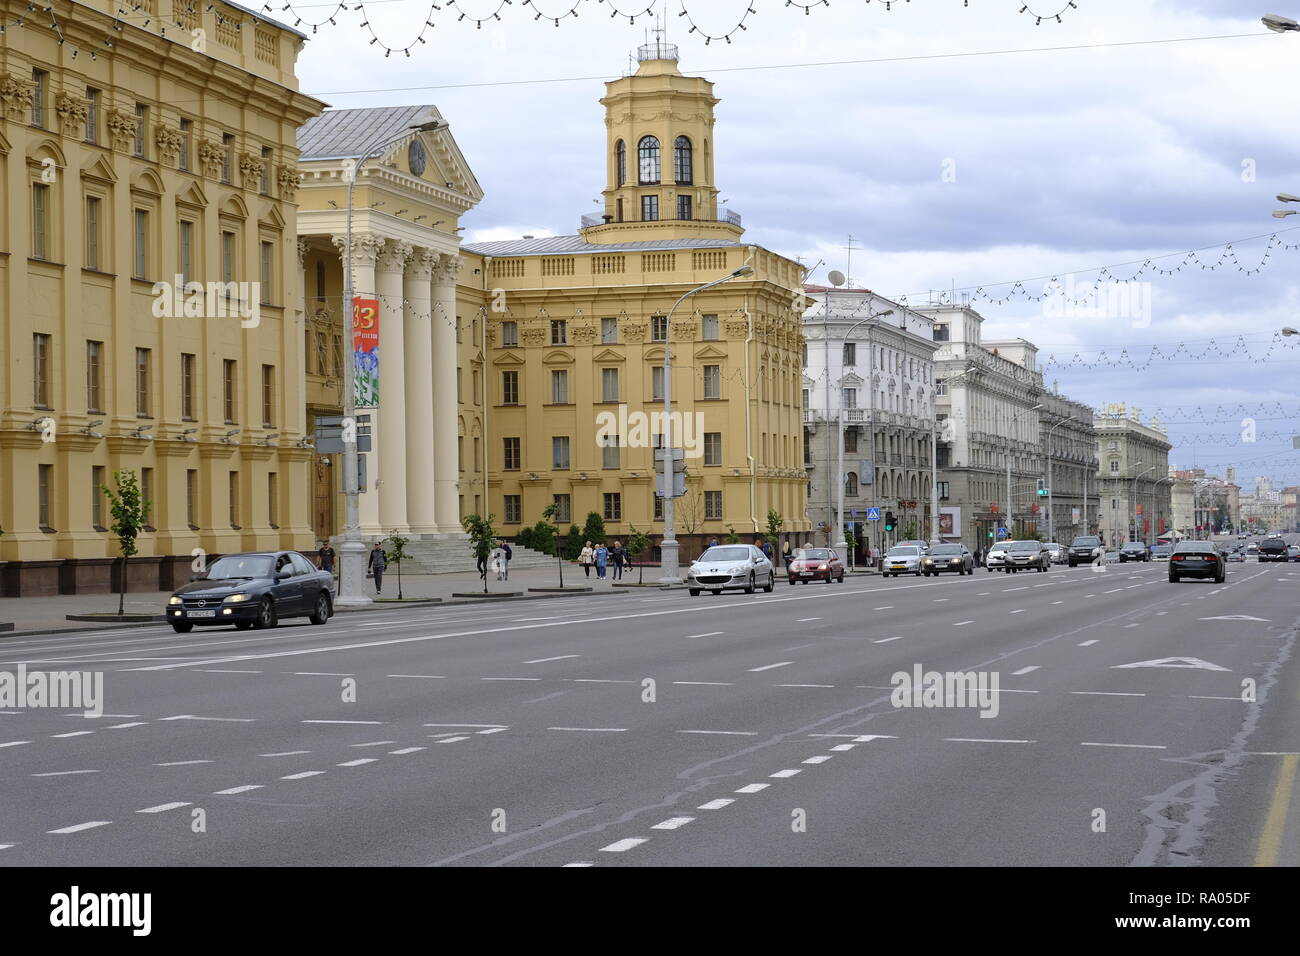 Minsk, Belarus - June 29, 2018: Minsk, Belarus Main KGB State Security committee office - Stock Image